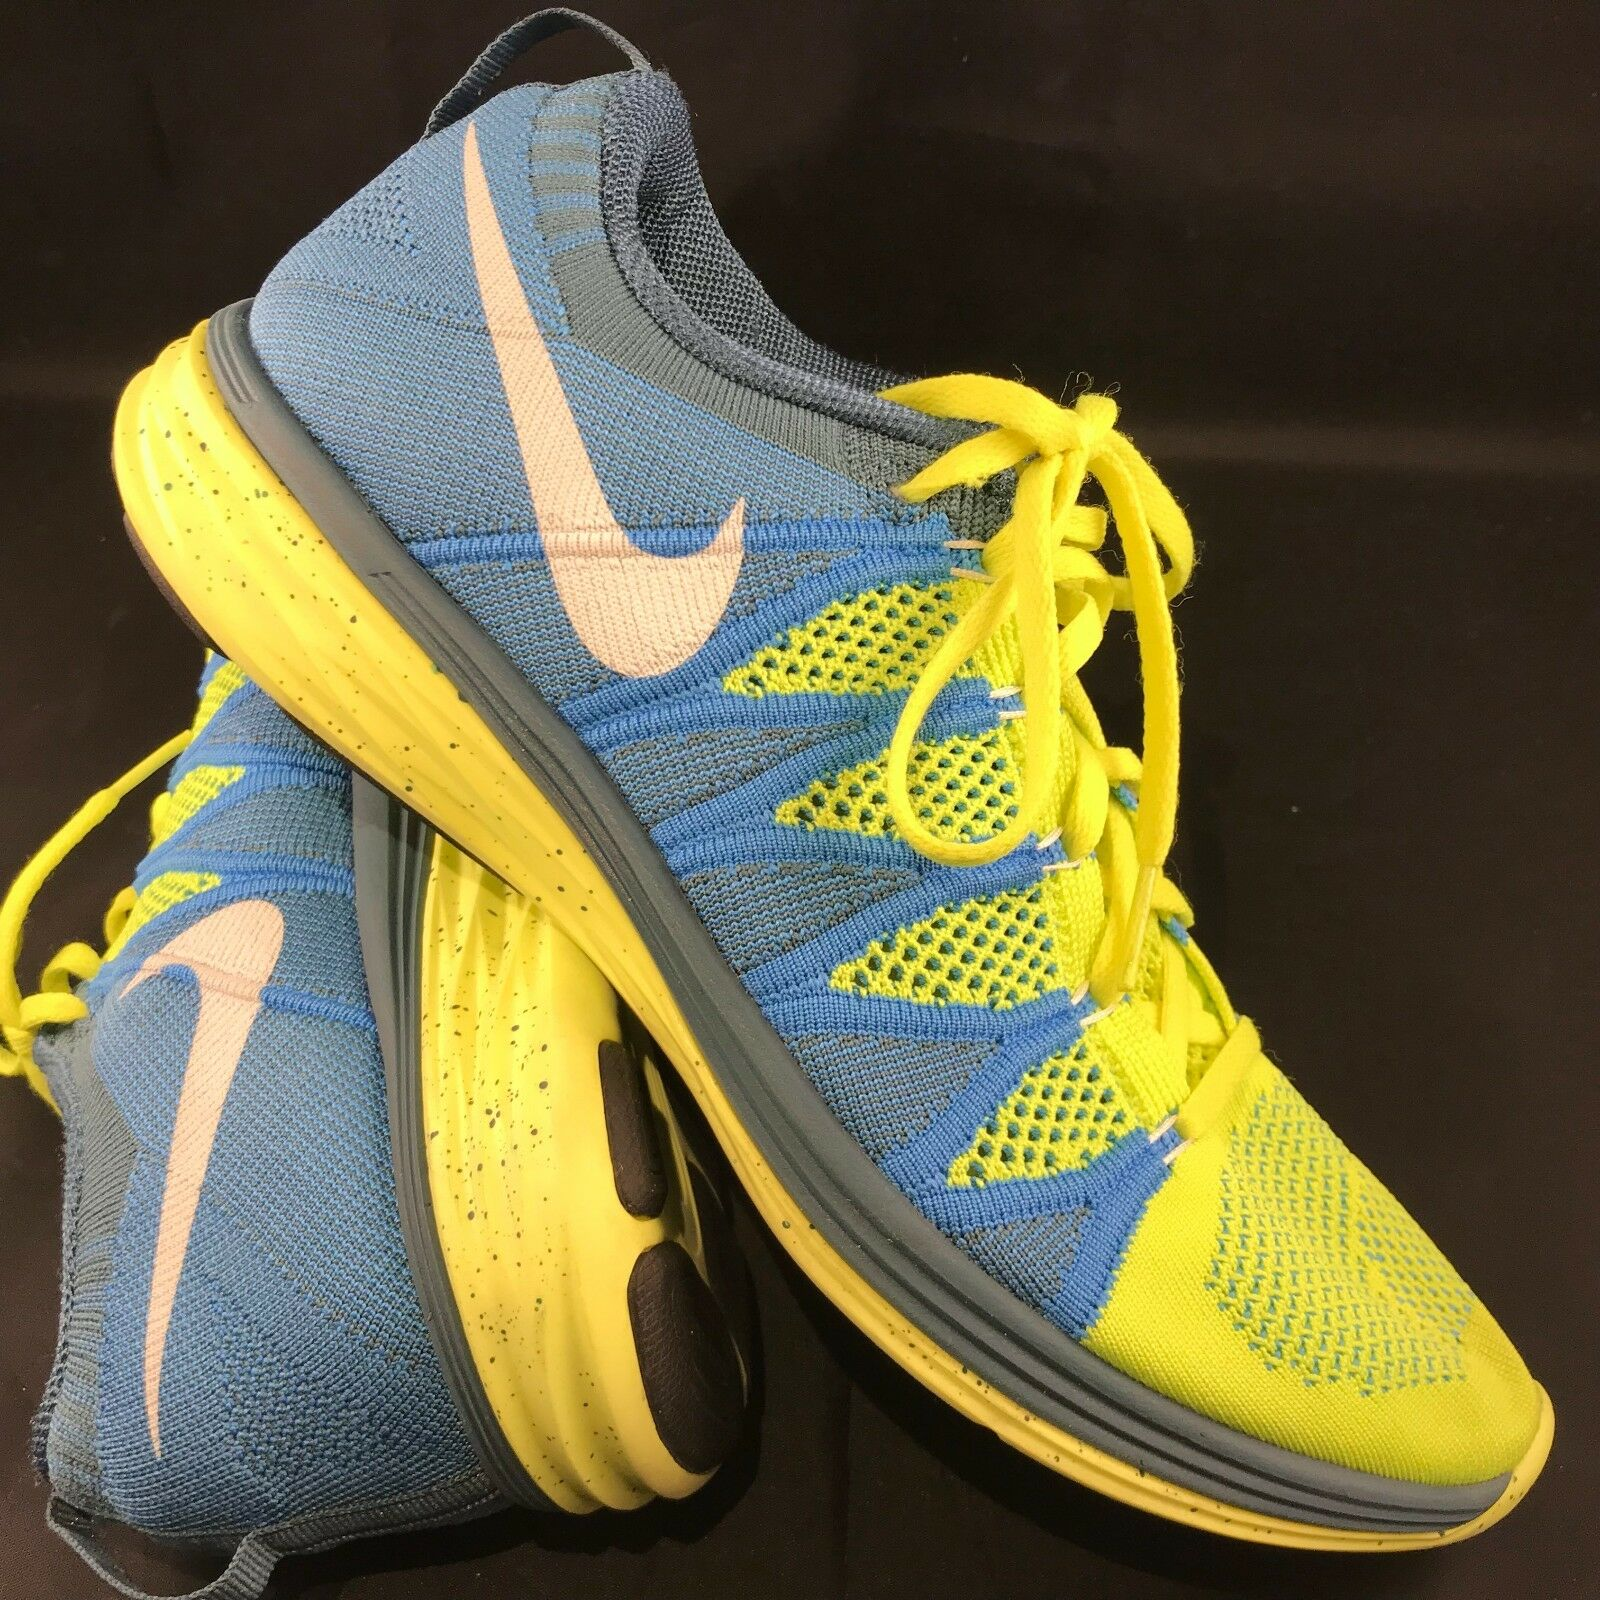 NIKE FLYKNIT LUNAR 2 RUNNING SHOES Mens SIZE 10 44 Blue Volt Yellow SAMPLE PROMO